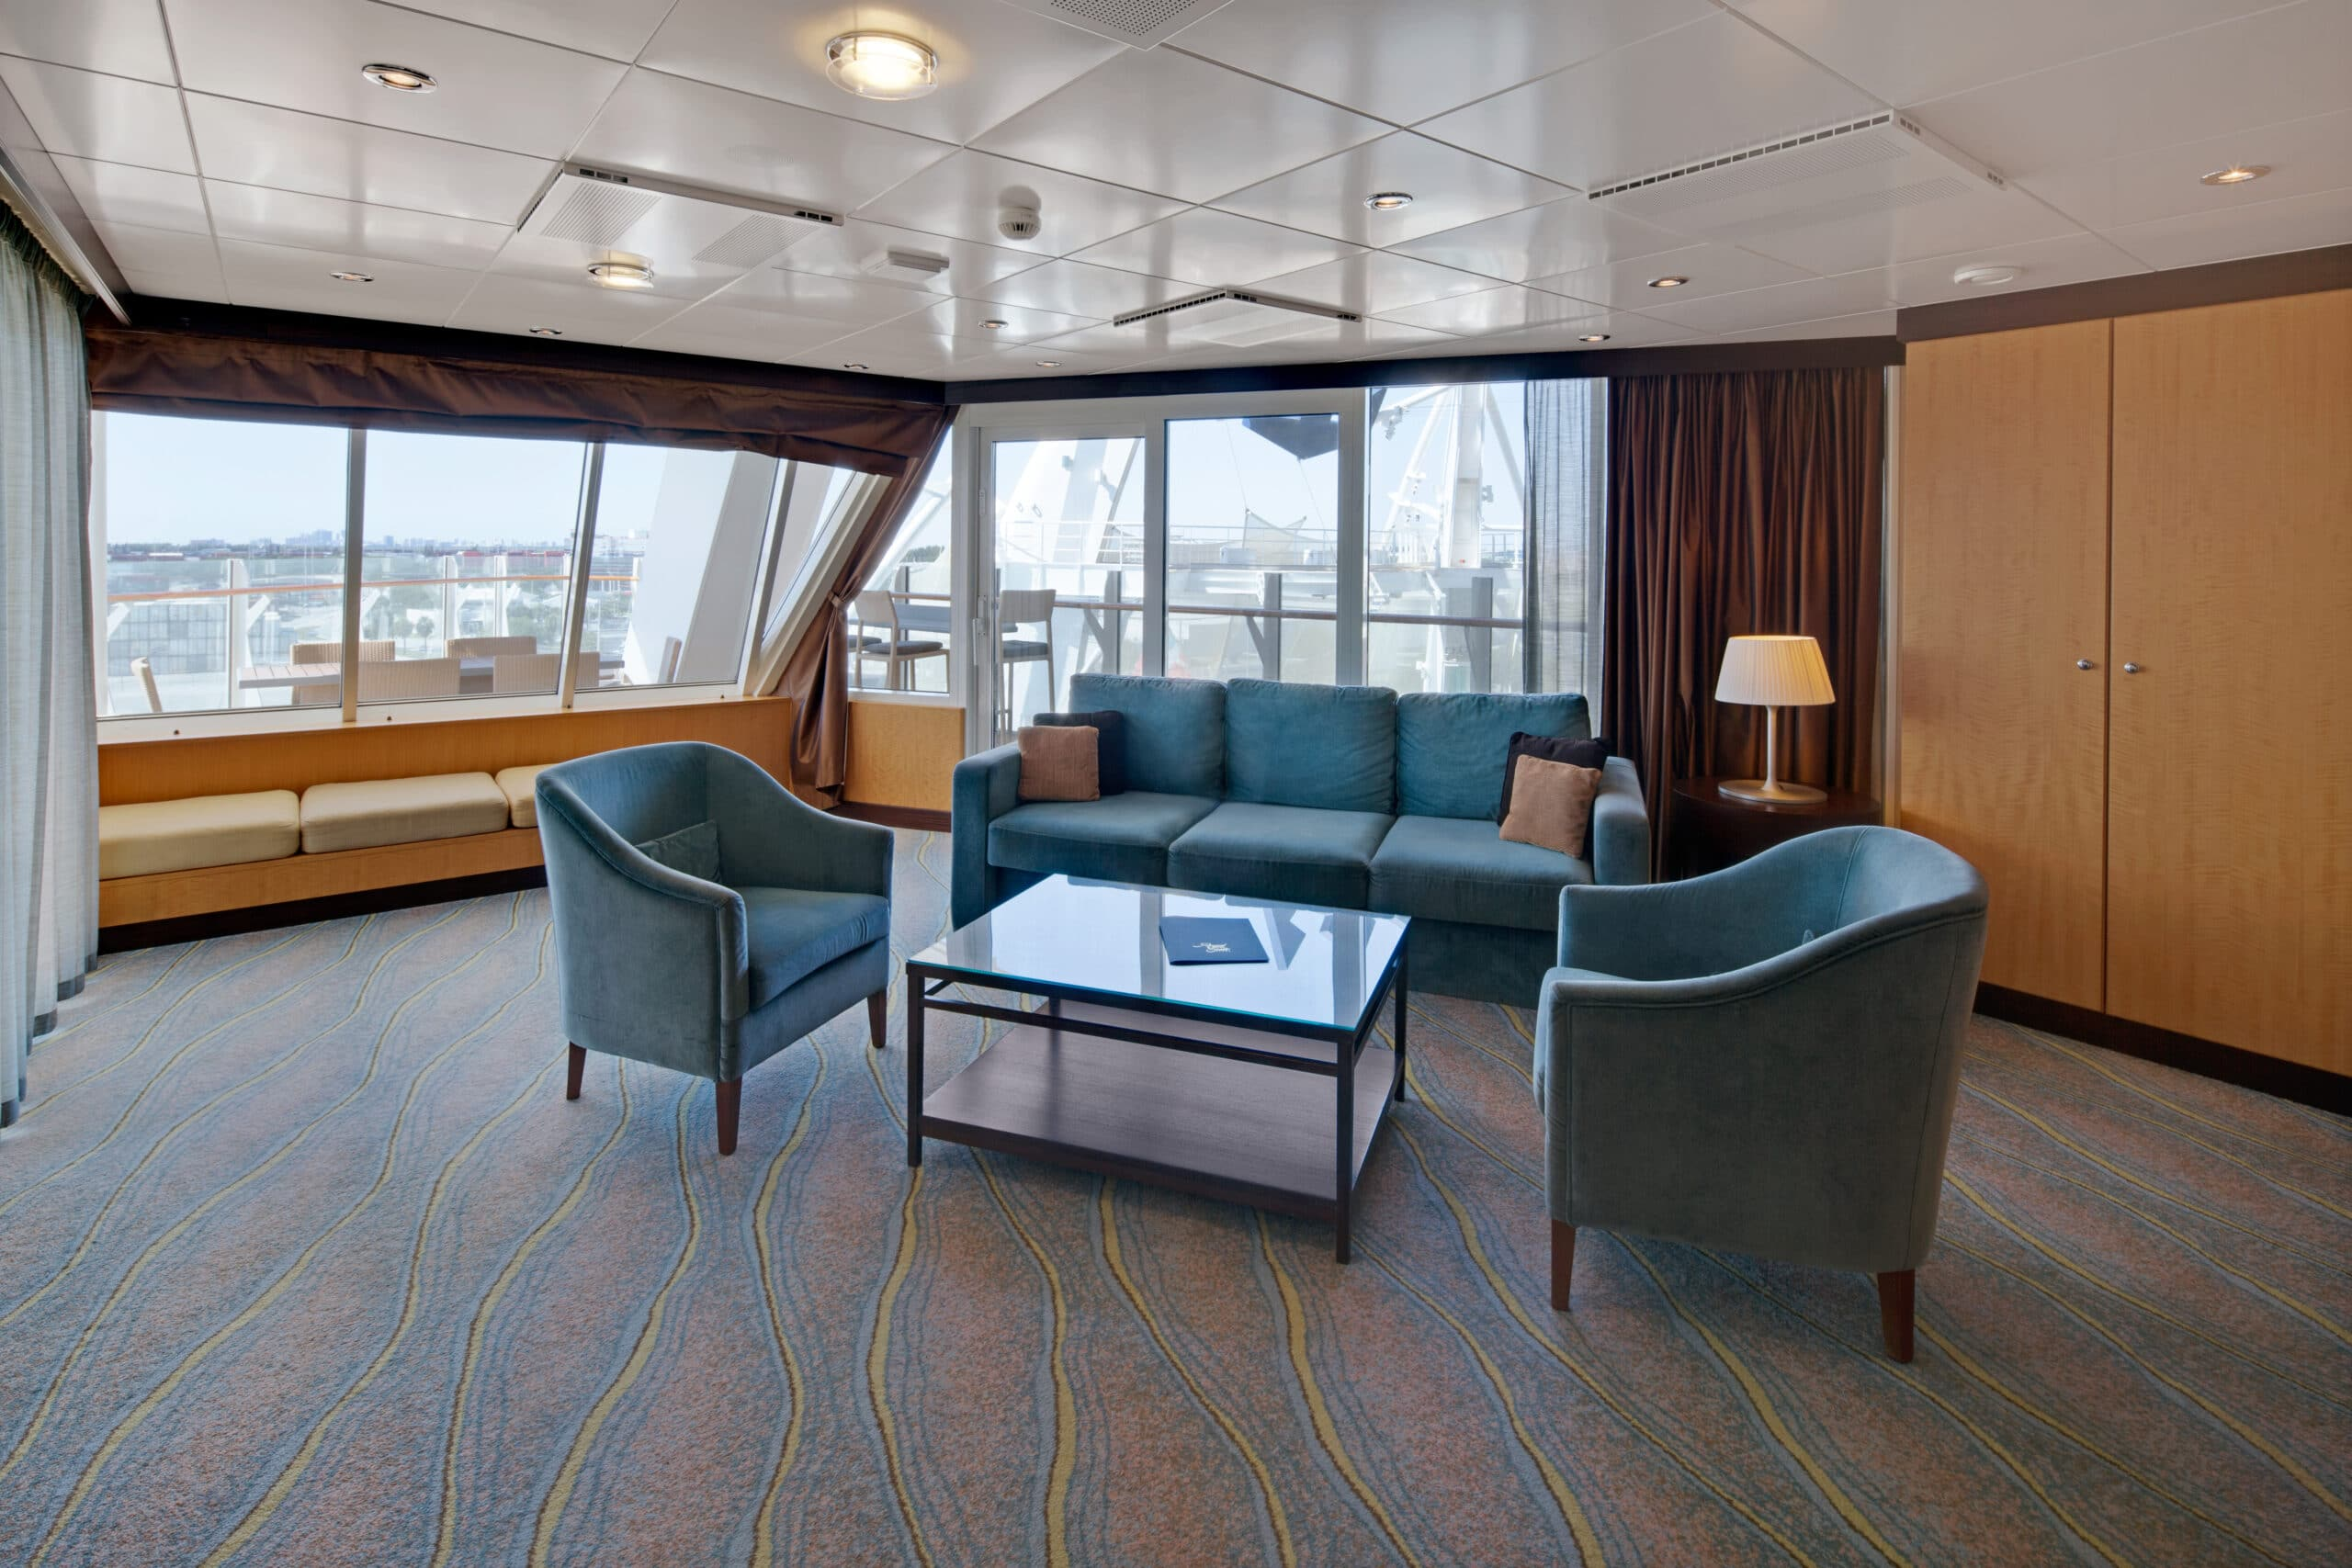 Royal-Caribbean-International-Allure-of-the-Seas-Oasis-of-the-seas-schip-cruiseschip-categorie-A1-Ruime-Aqua-theather-met-2-slaapkamers